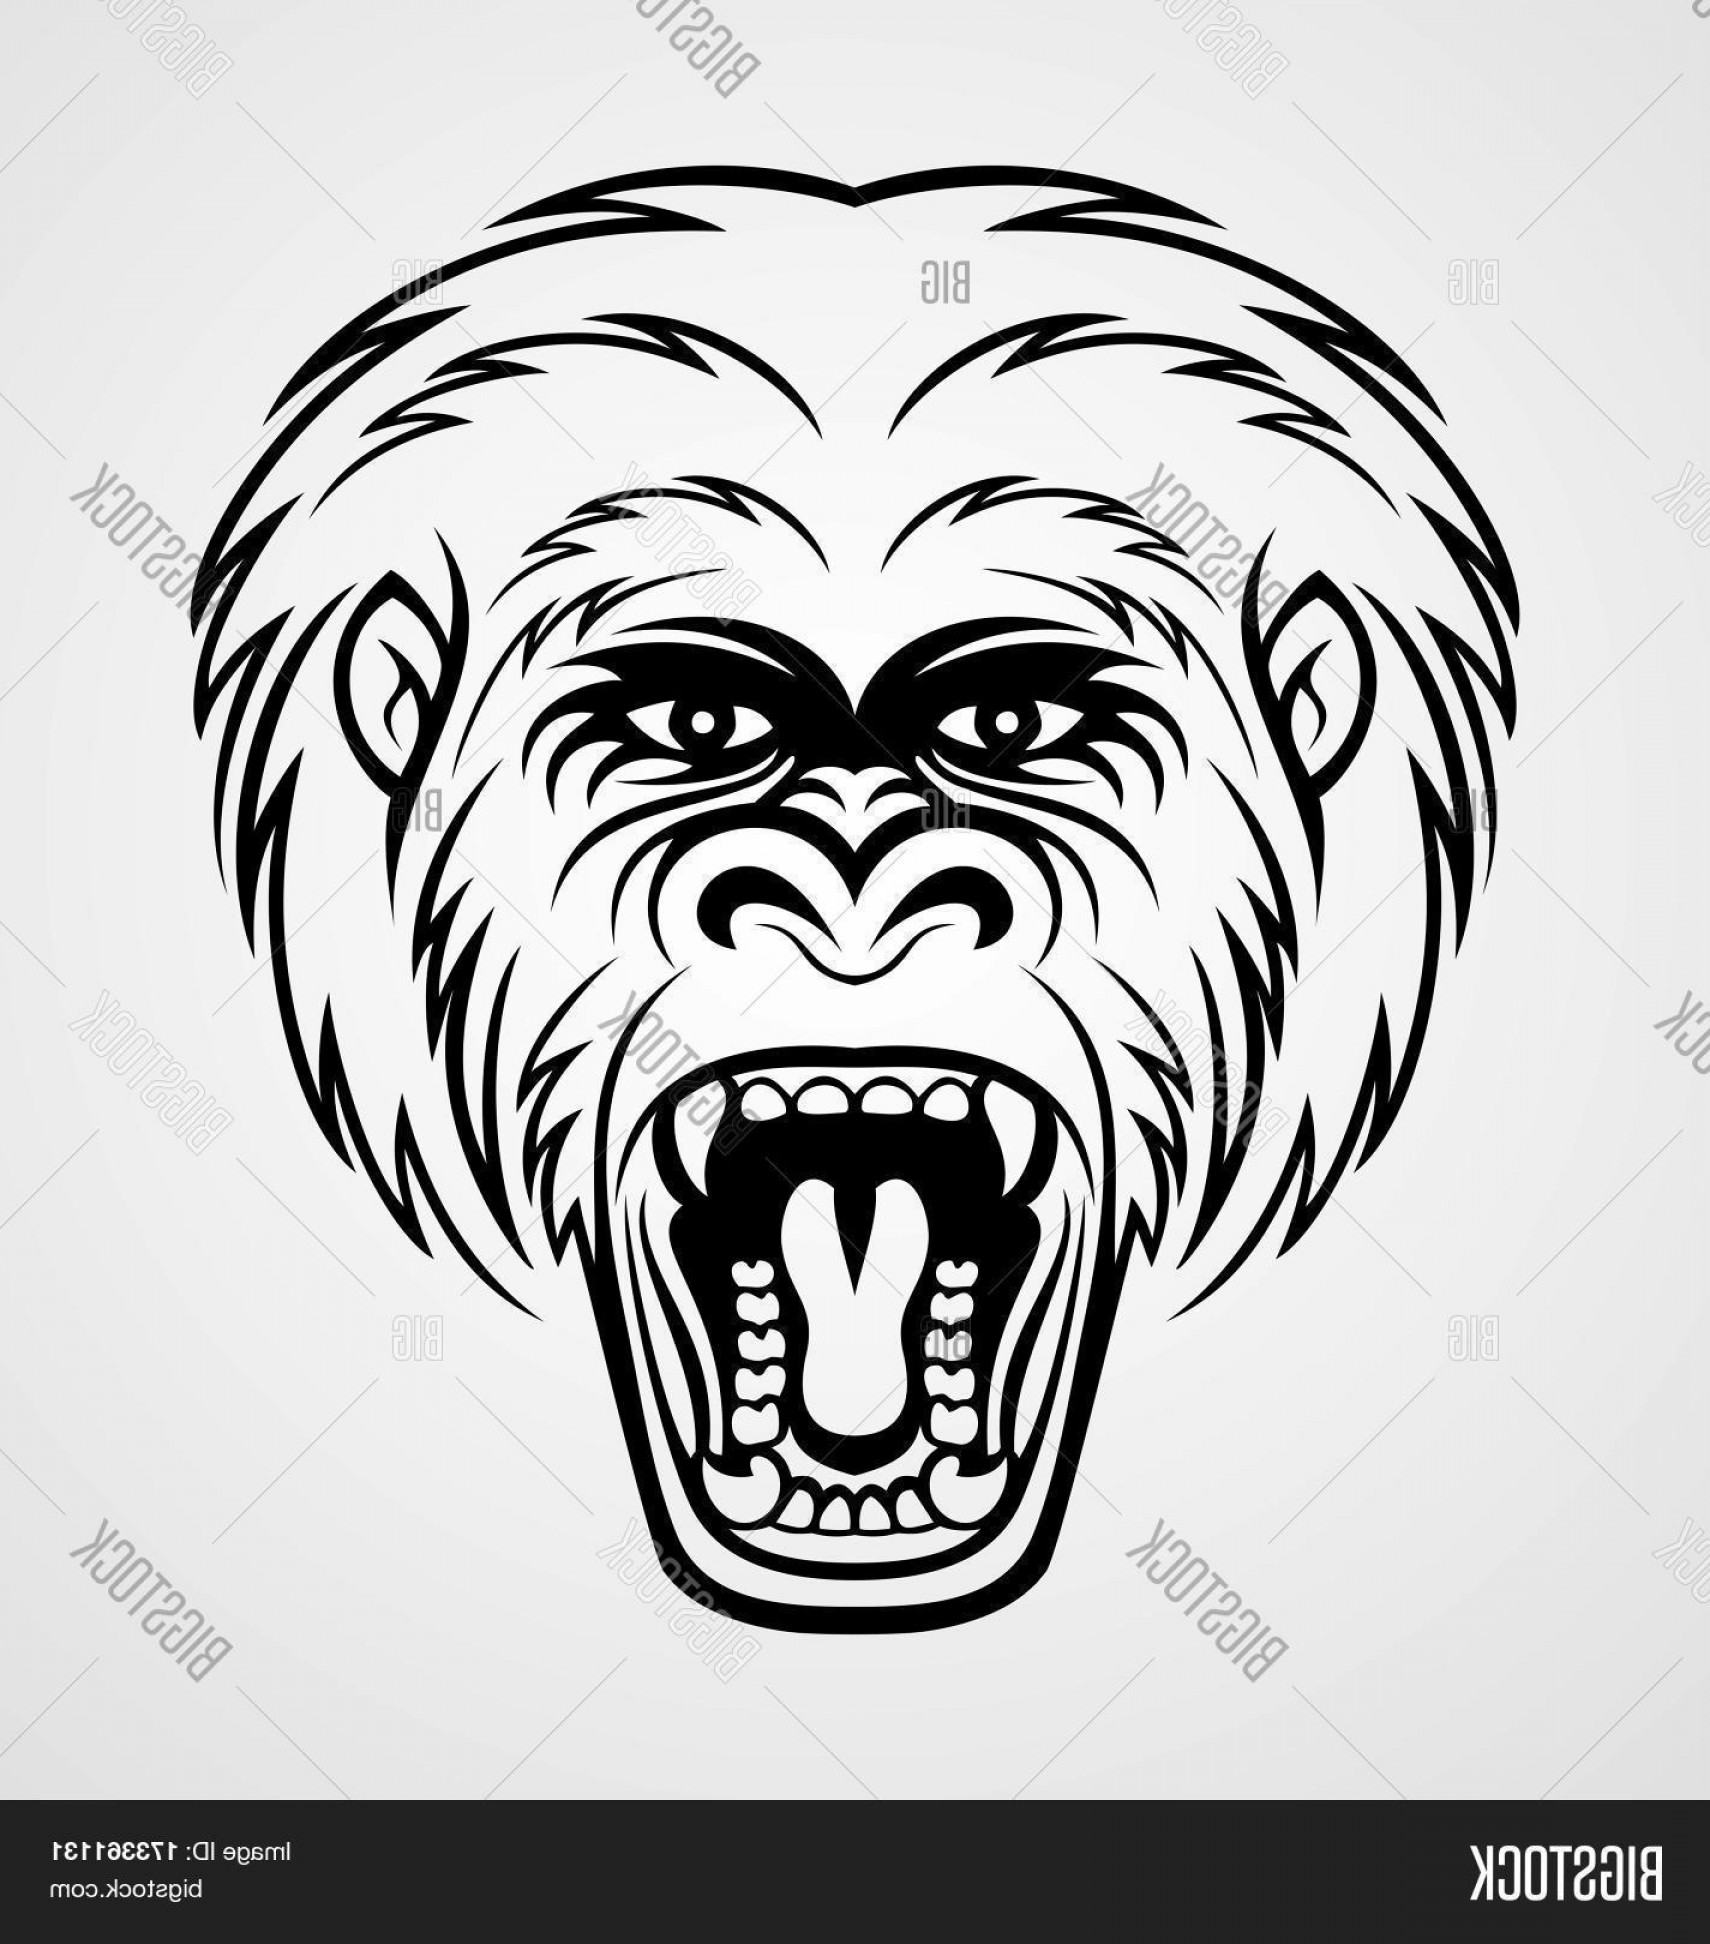 1710x1944 Stock Vector Angry Gorilla Head Tattoo Design Vector Illustration